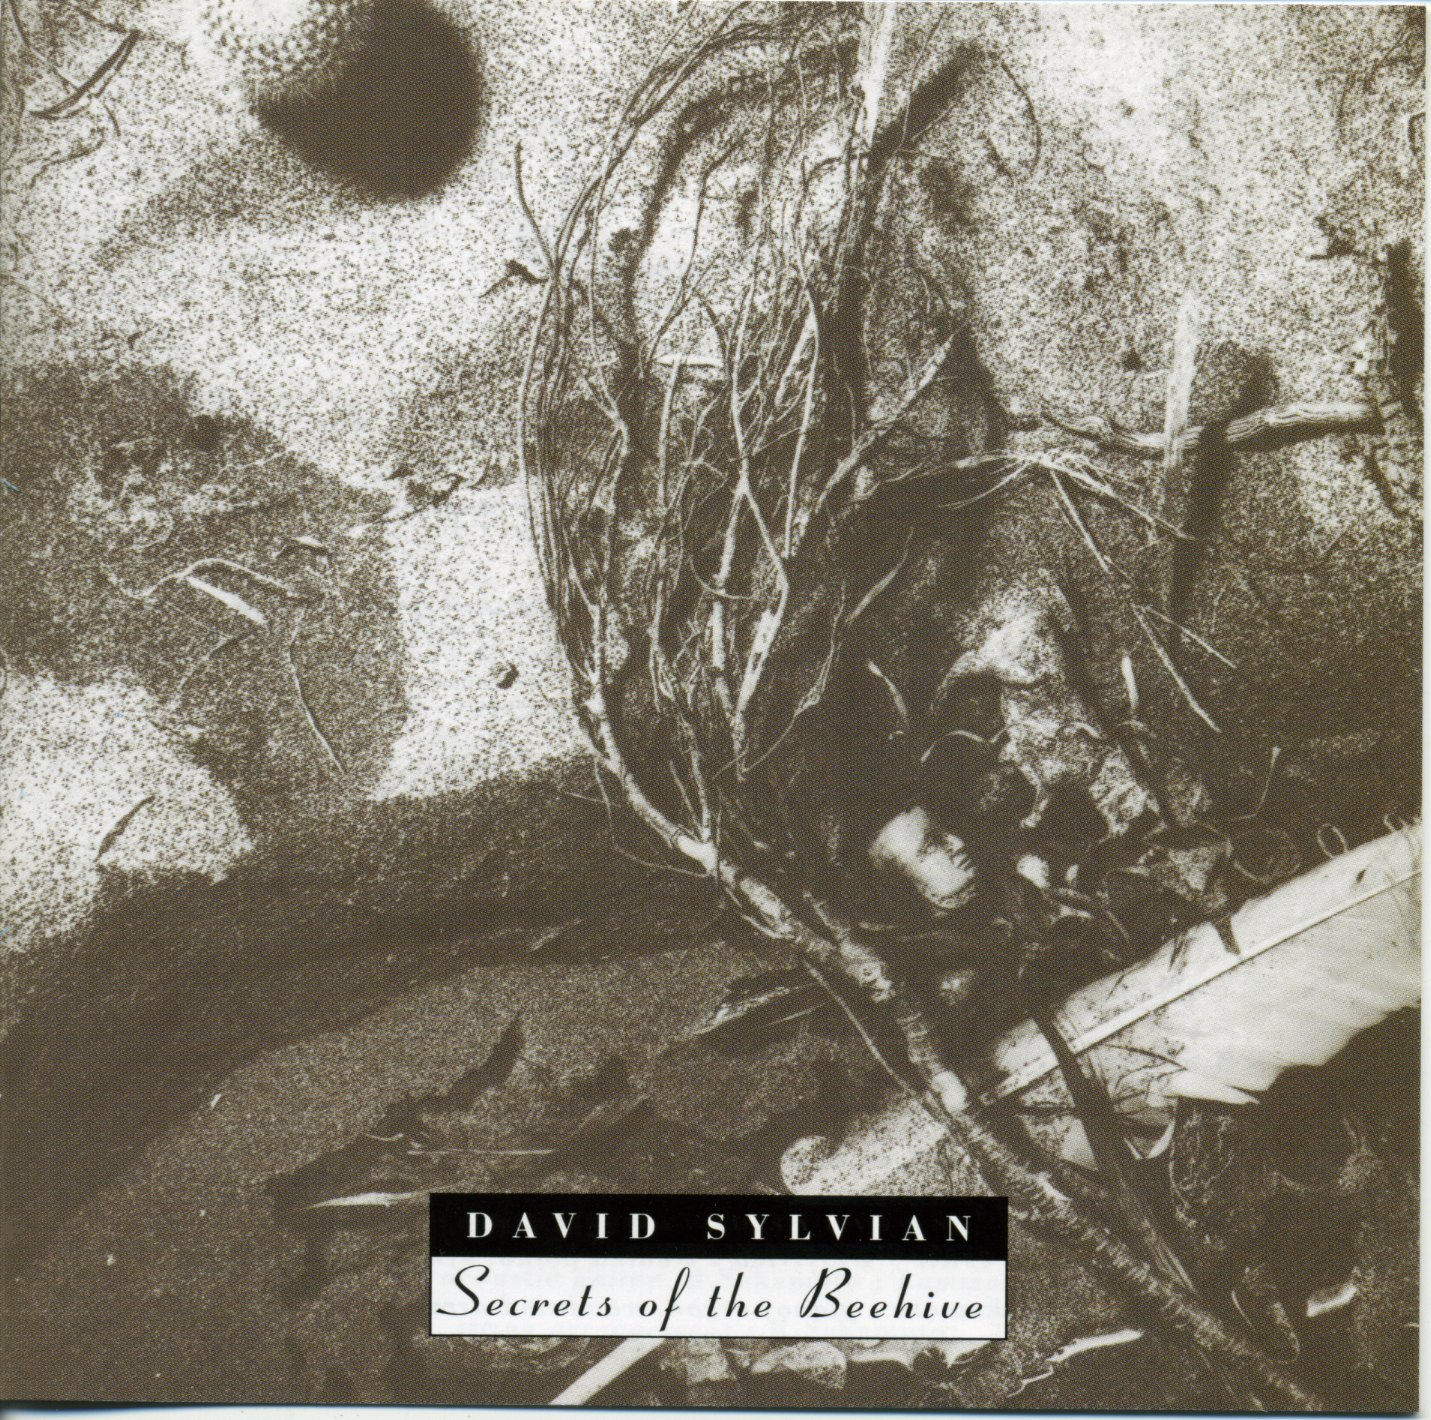 The Story Behind The Album: Secrets of the Beehive, by David Sylvian